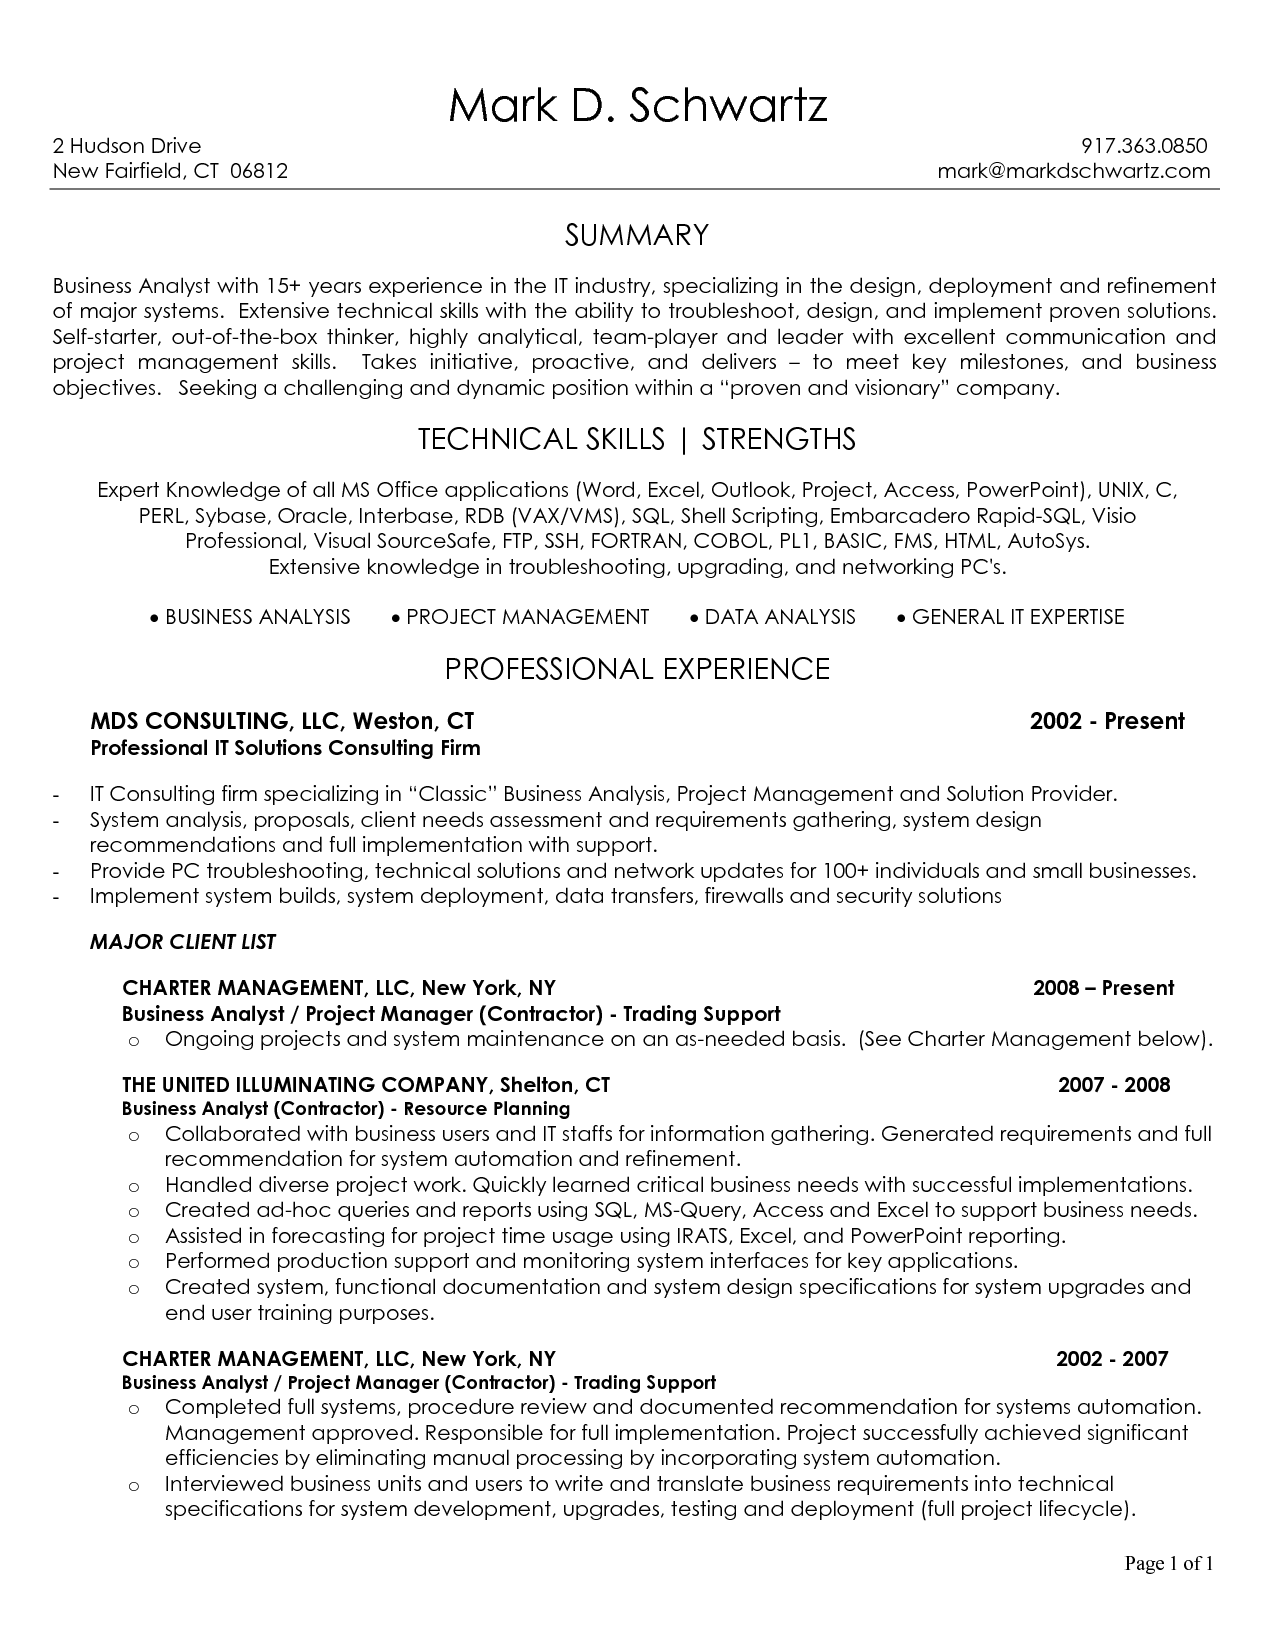 Business analyst resume sample best template junior intended for business analyst resume sample best template junior intended for flashek